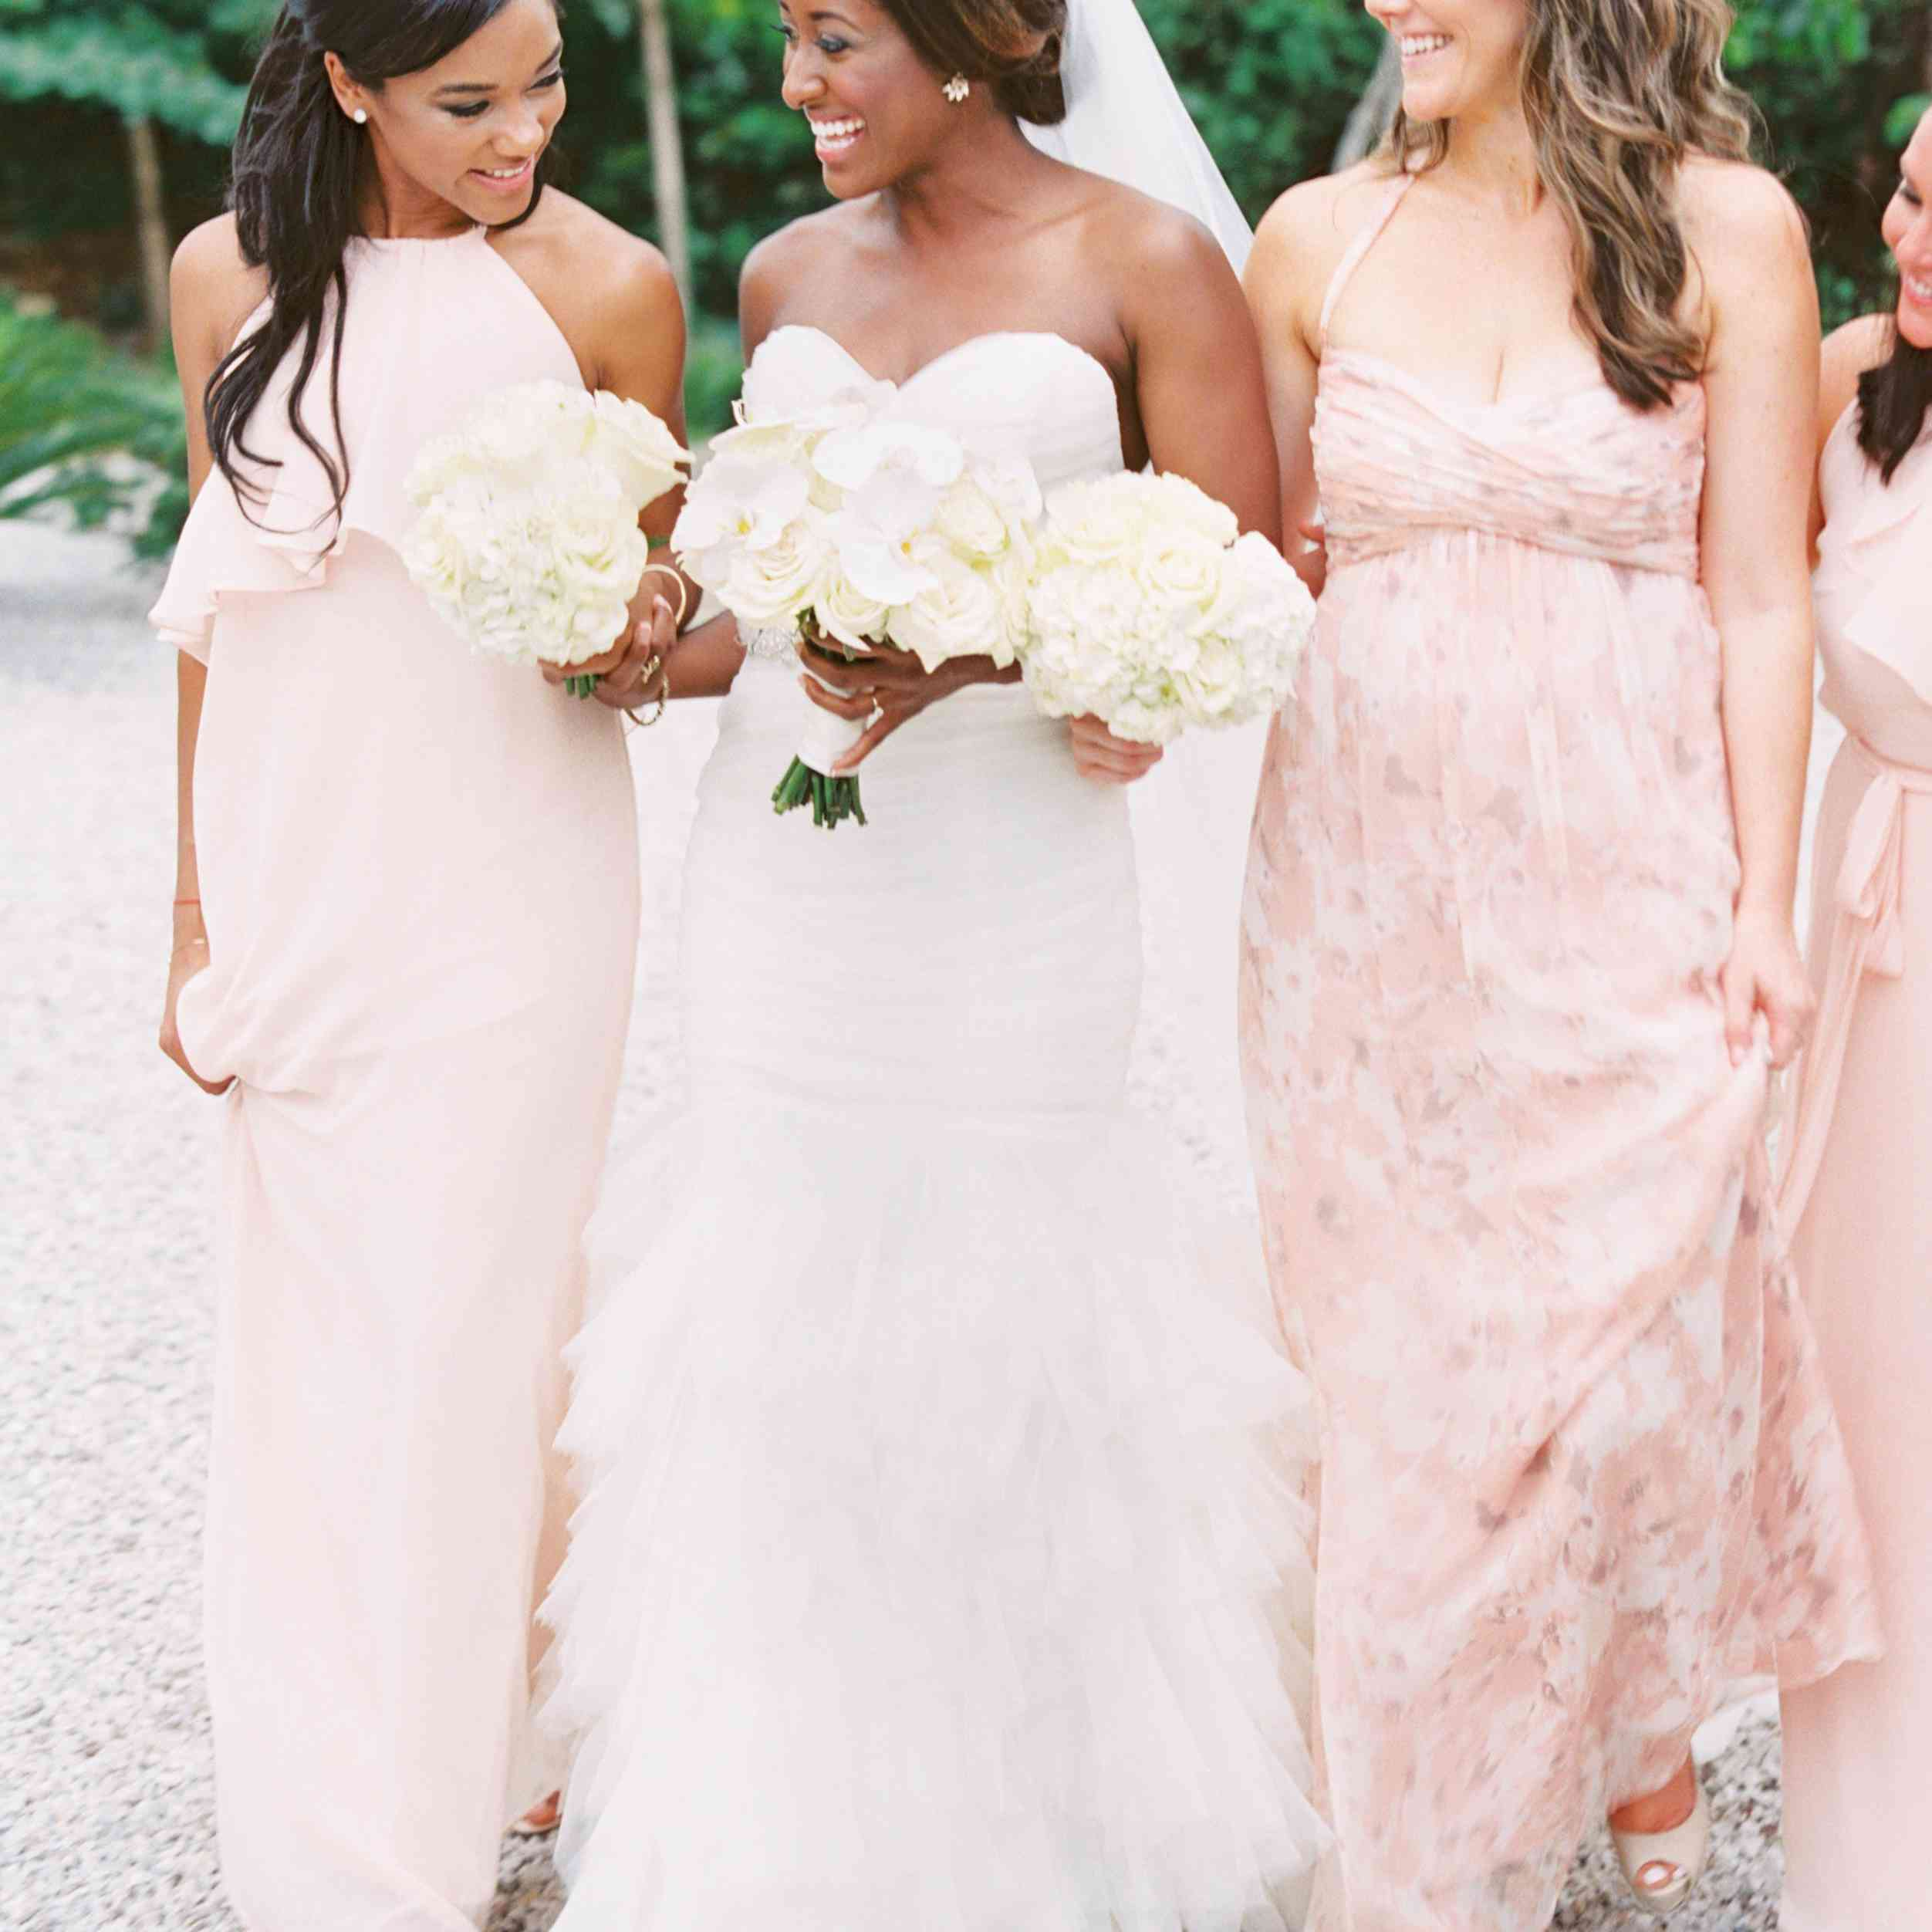 Bridesmaids in pink walking with bride